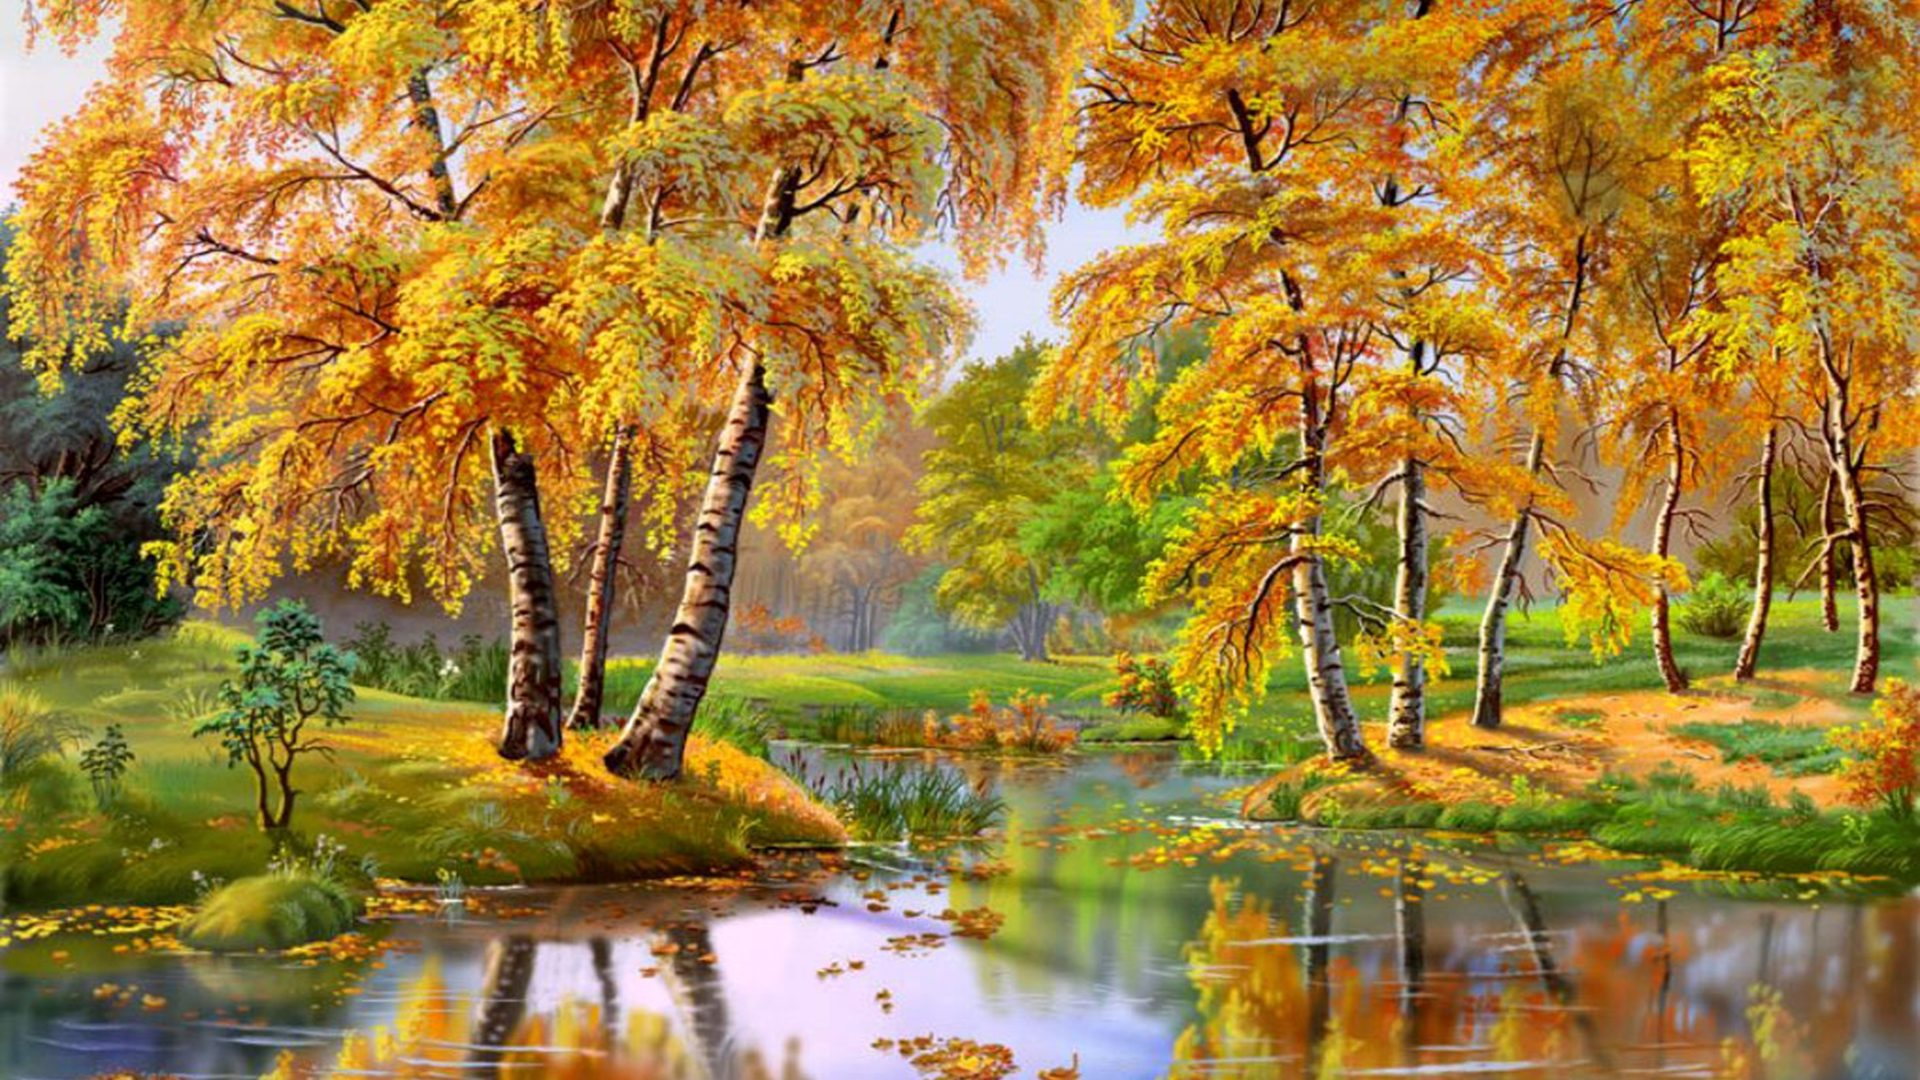 Beautiful Chinese Girl Paintings Widescreen Wallpaper Wonderful Autumn Landscape River Trees 087537